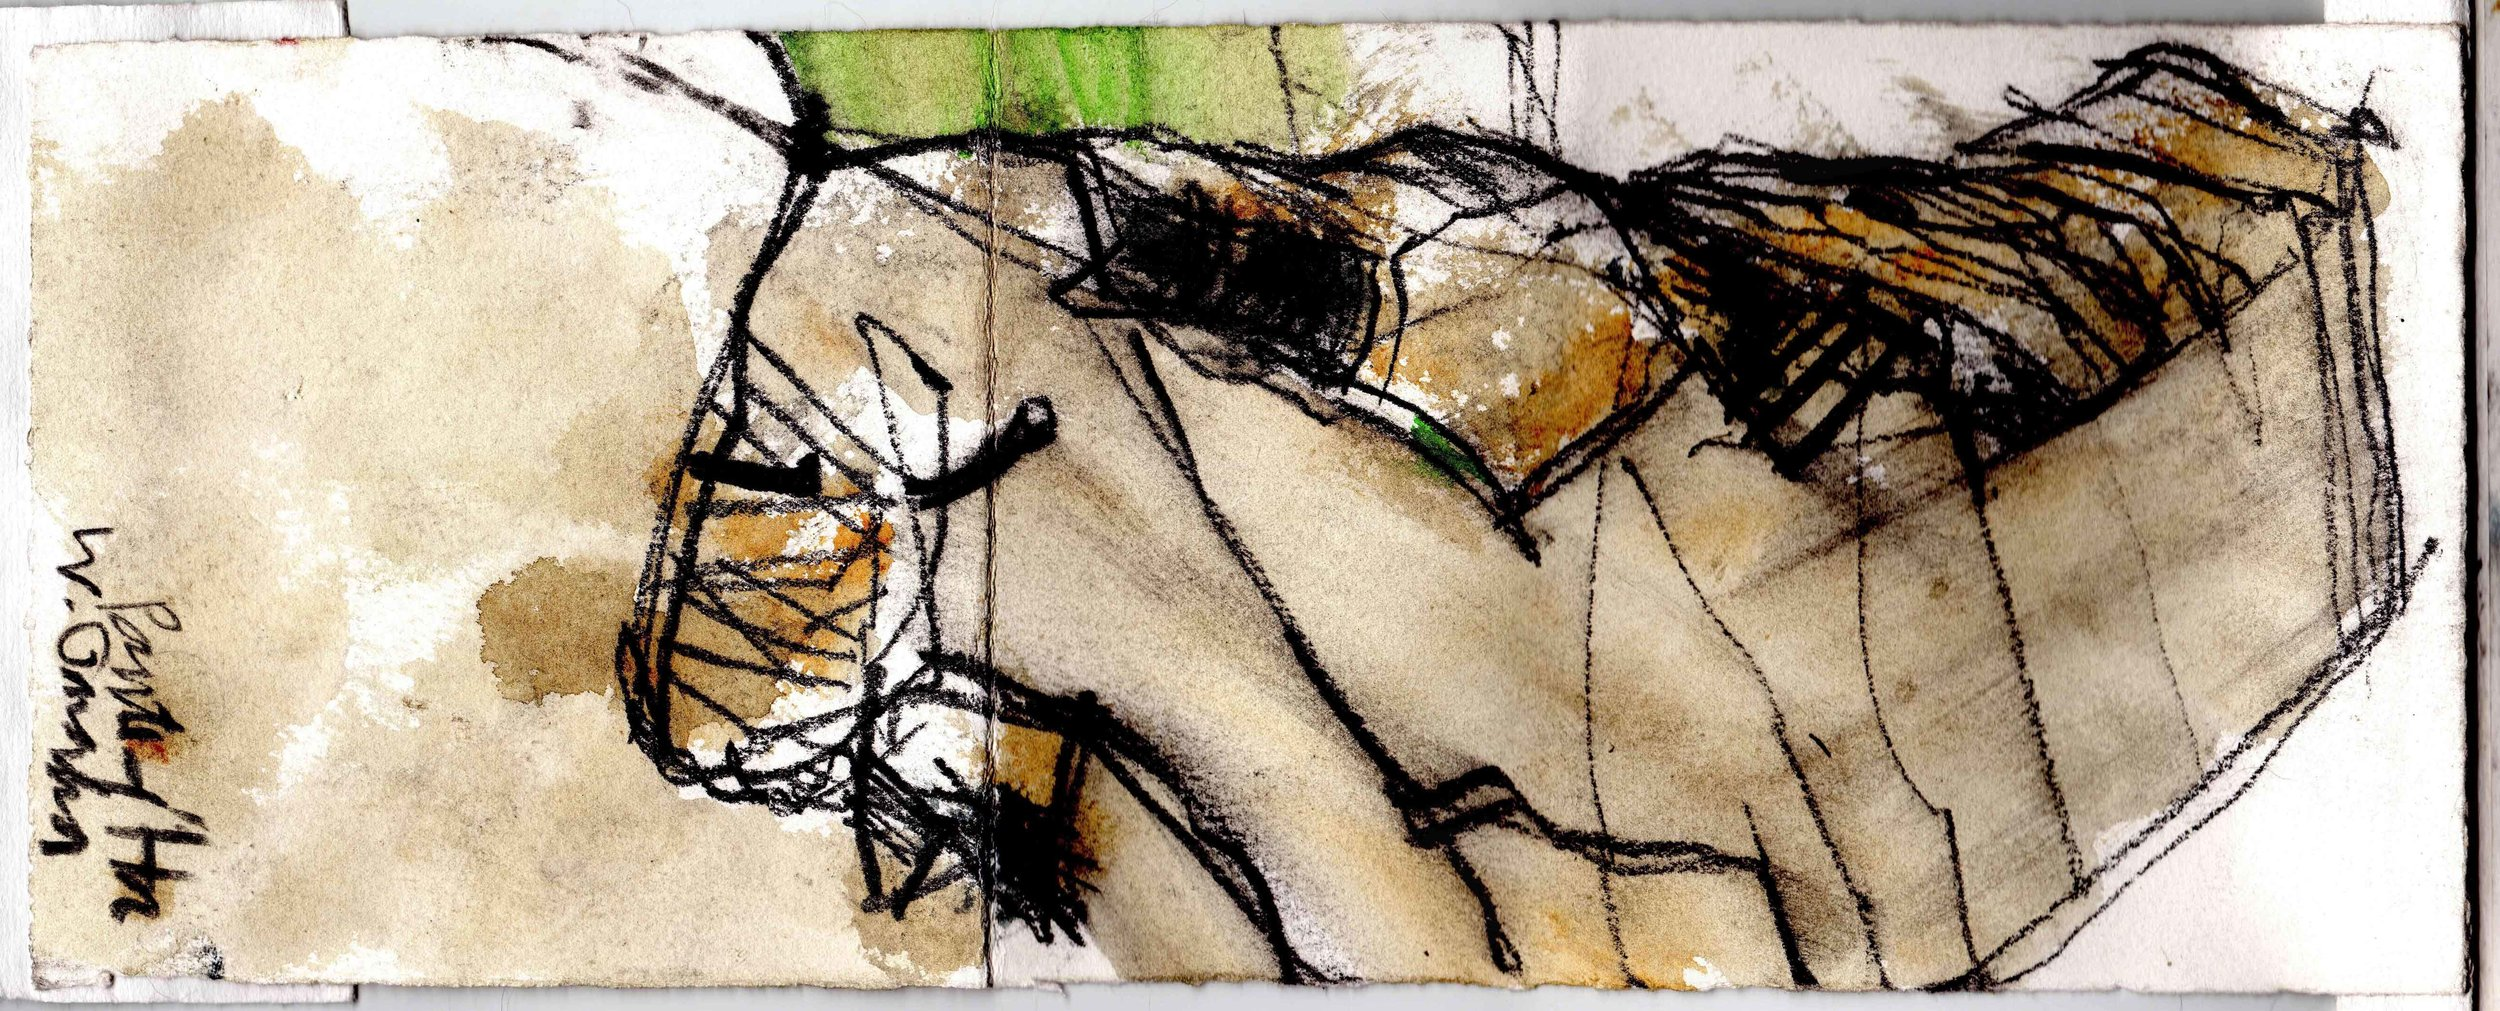 Omaha-beach-sketchbook-Normandy-2008-(1).jpg